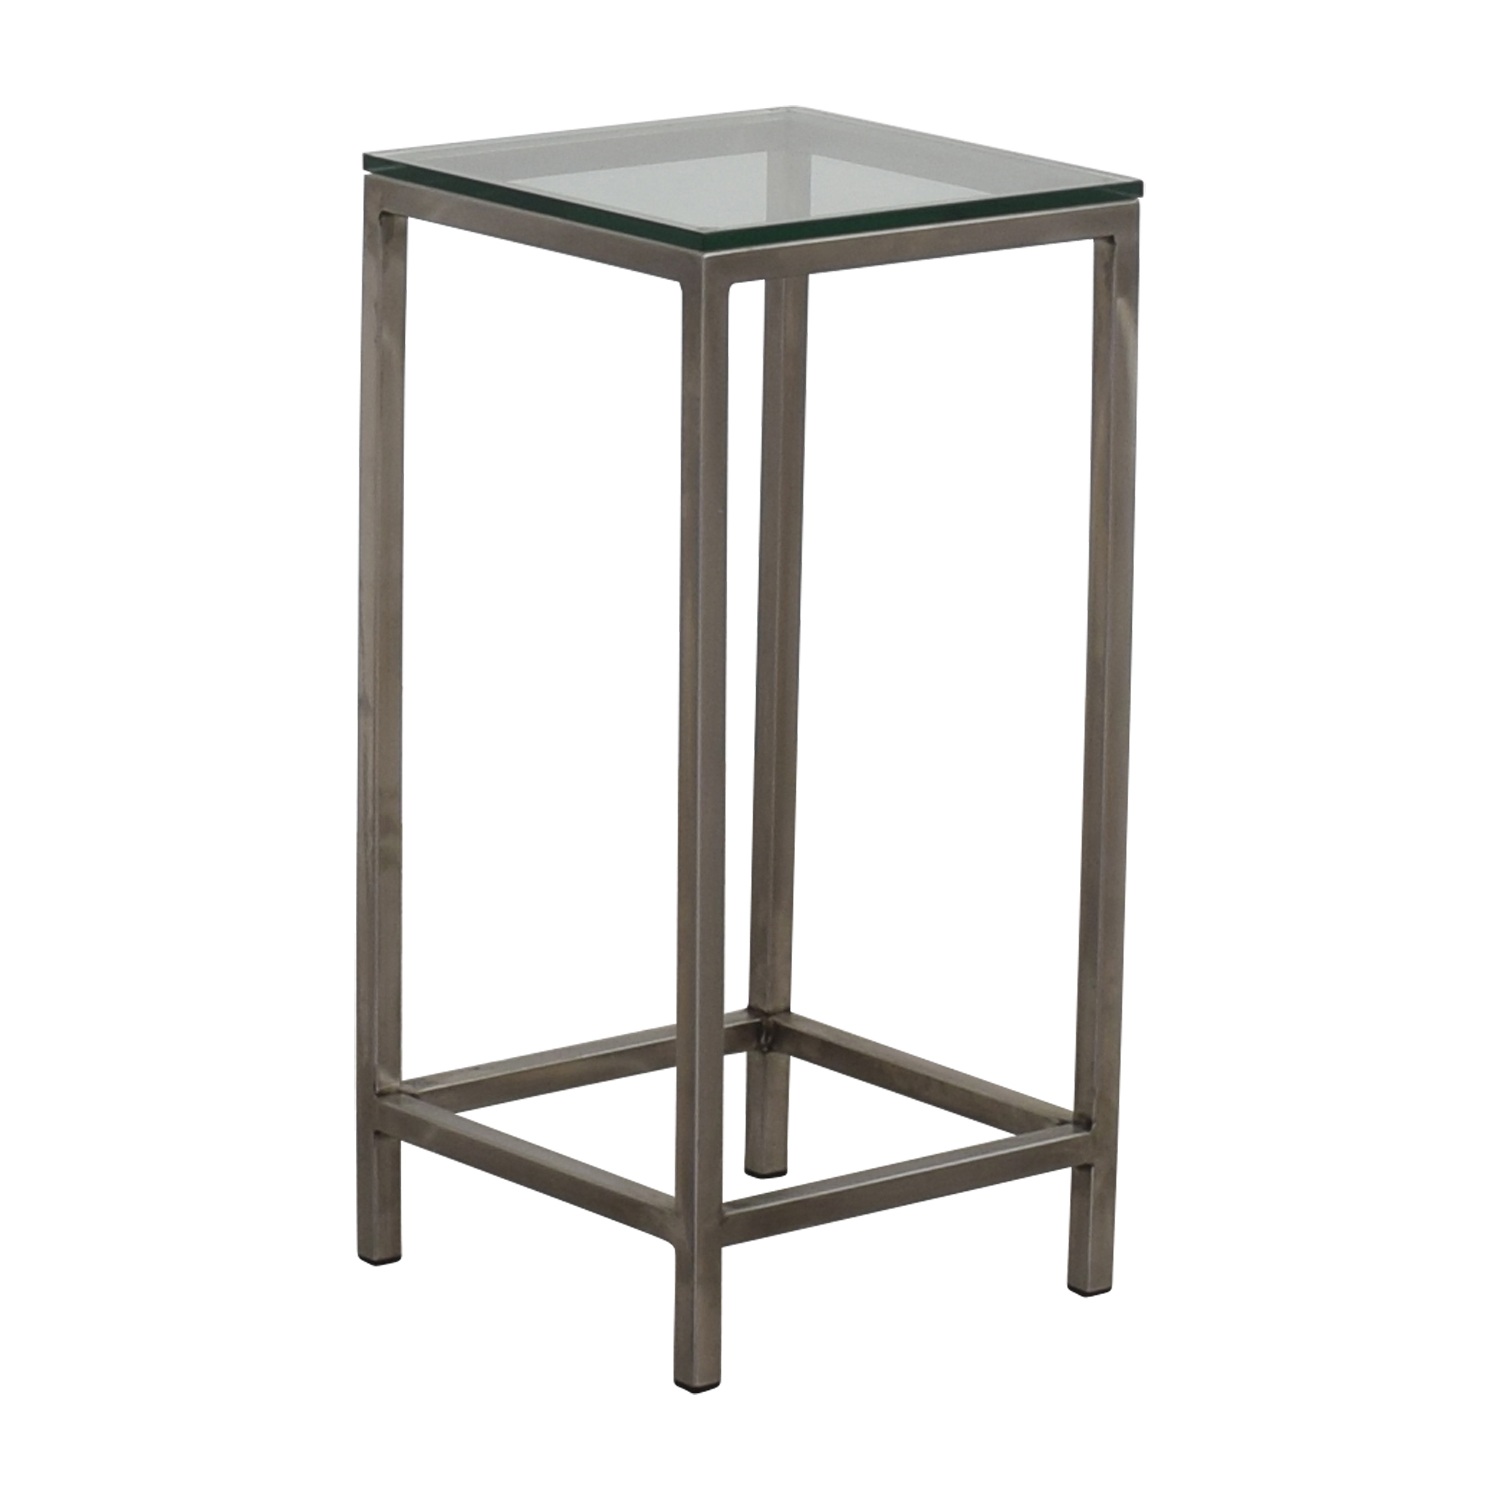 Square Glass End Tables 88 Off Crate And Barrel Crate And Barrel Era Square Glass